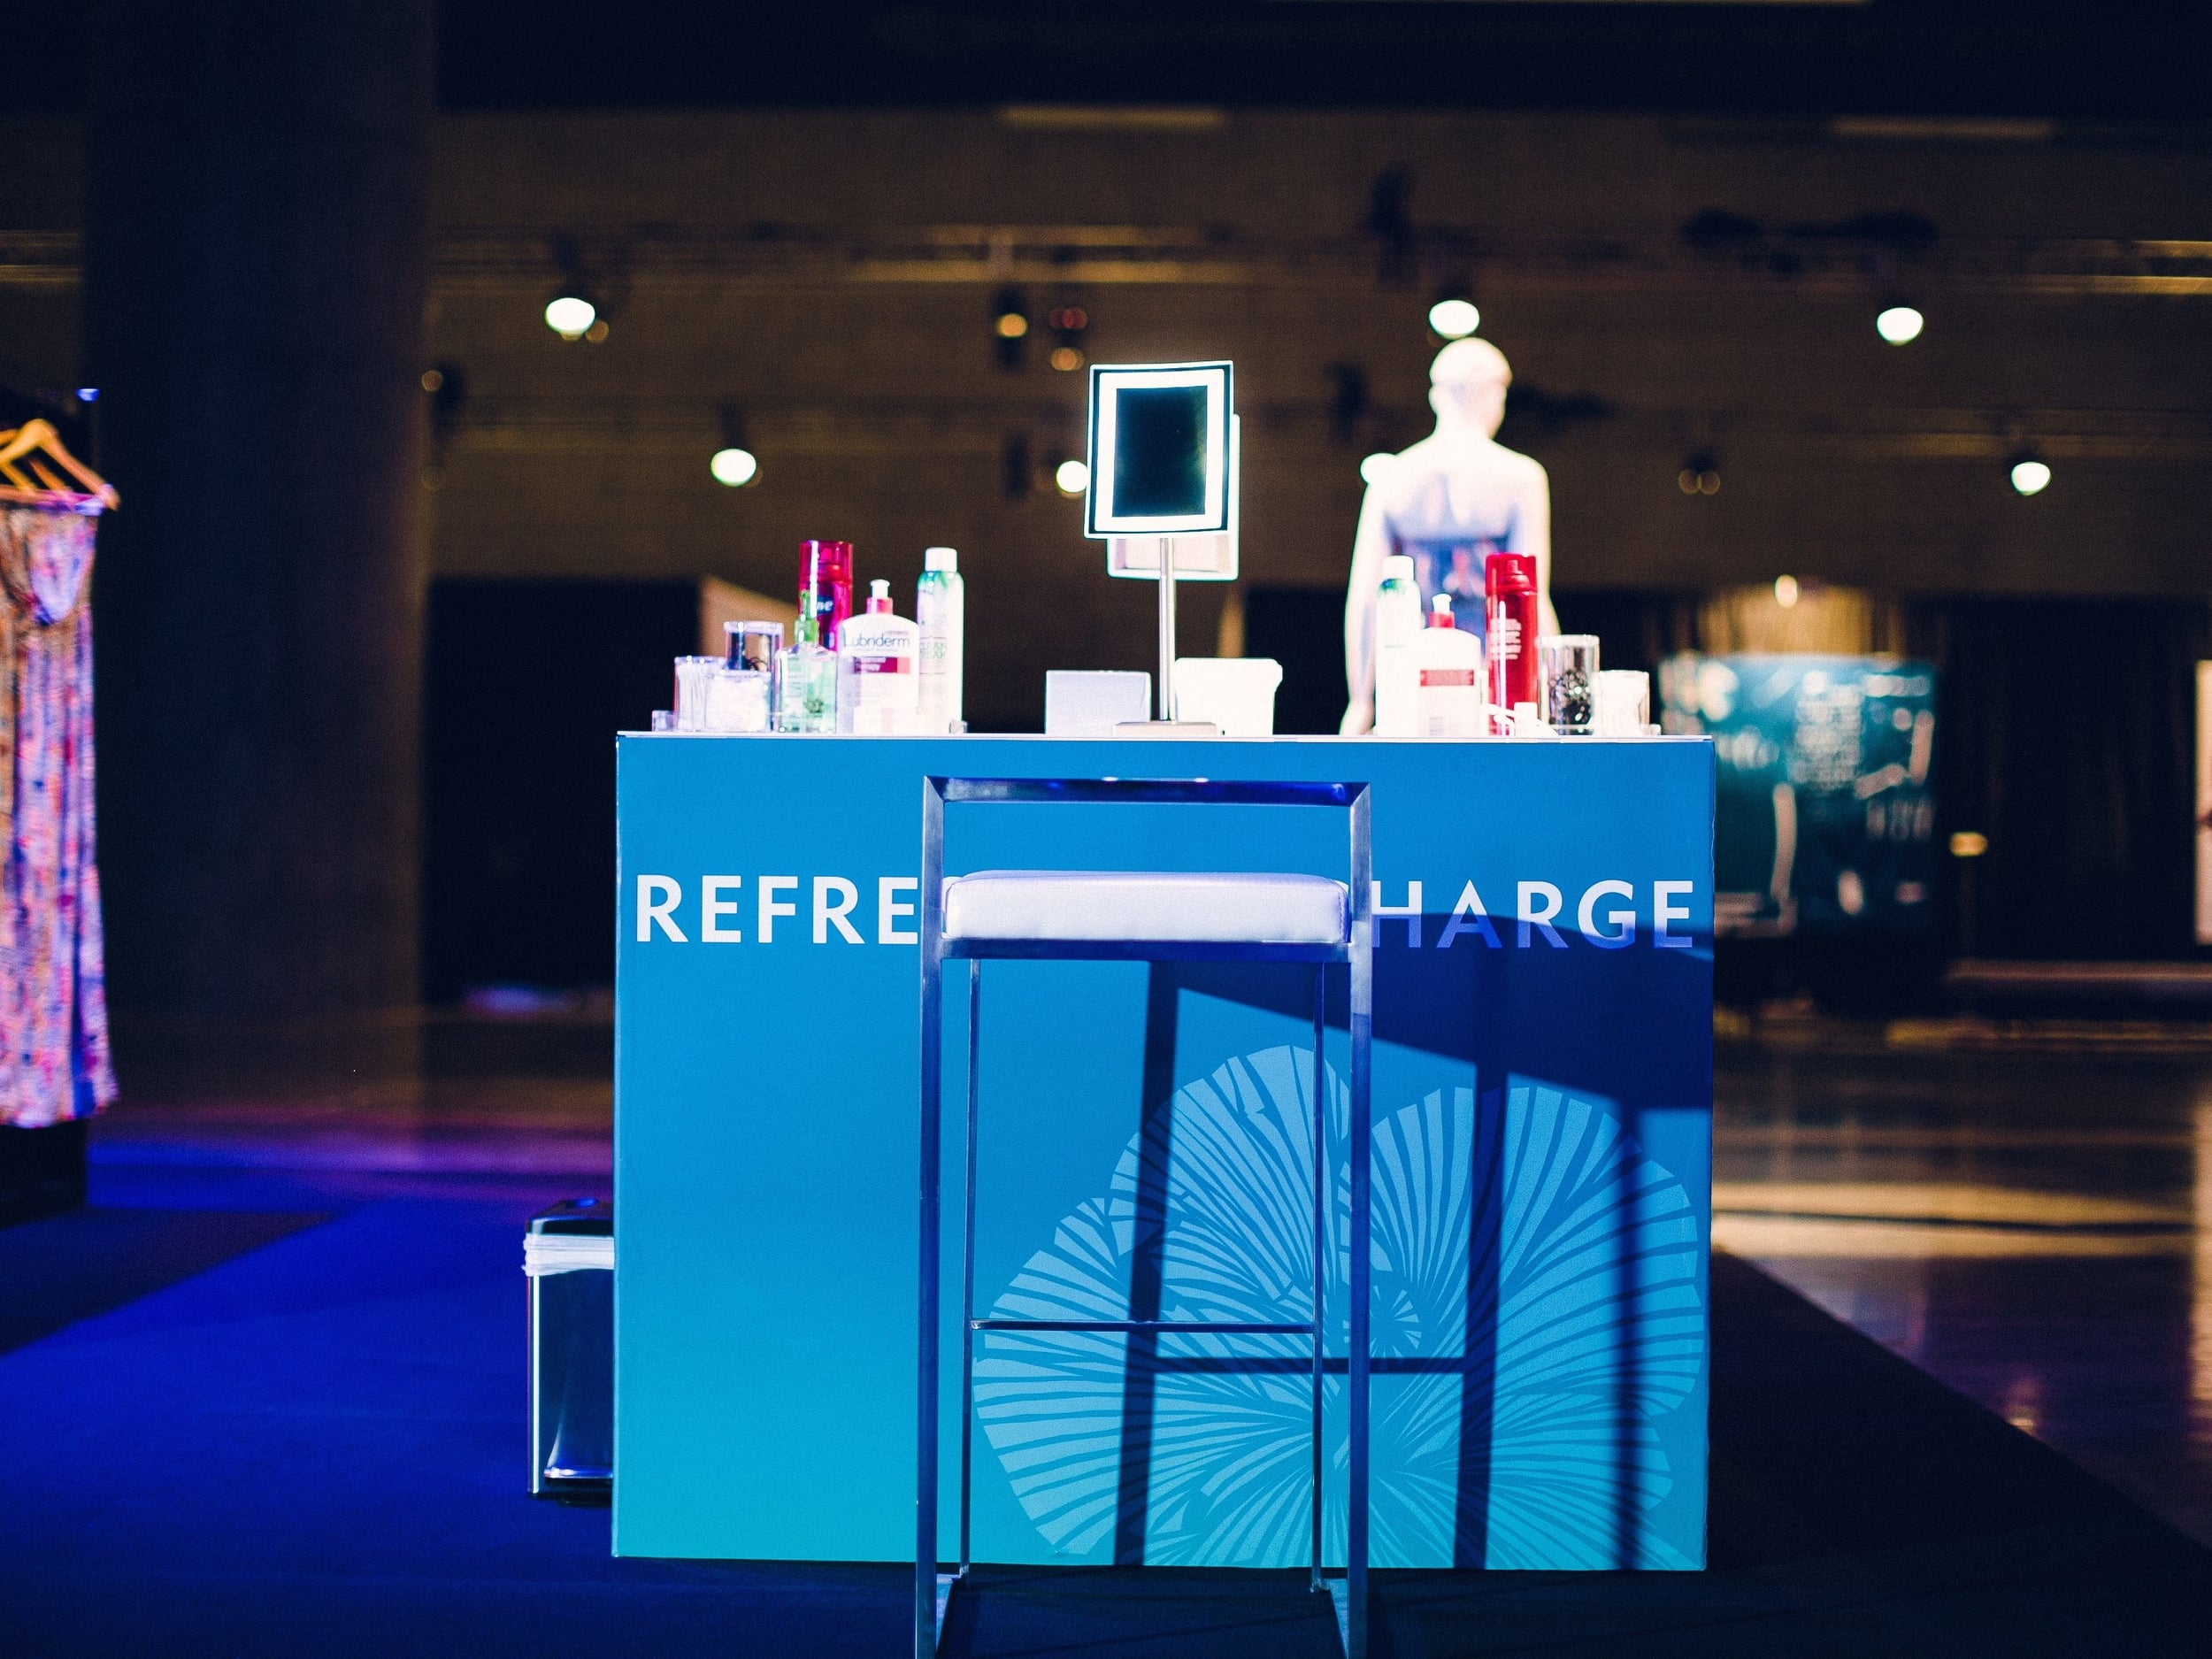 The custom-branded stations contained a variety of beauty products for folks to freshen up.